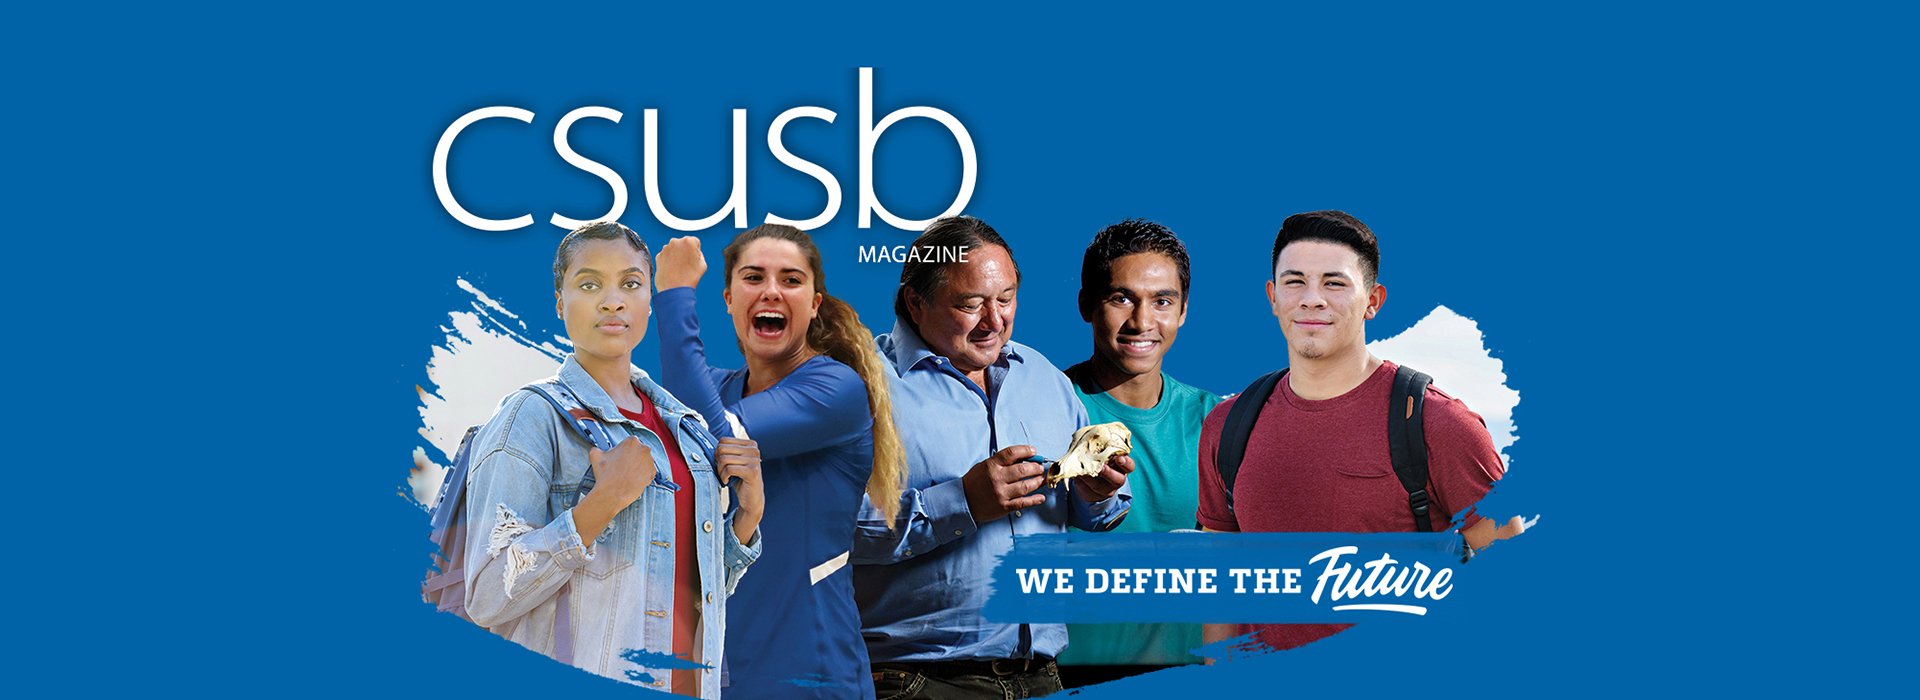 CSUSB Magazine is now online